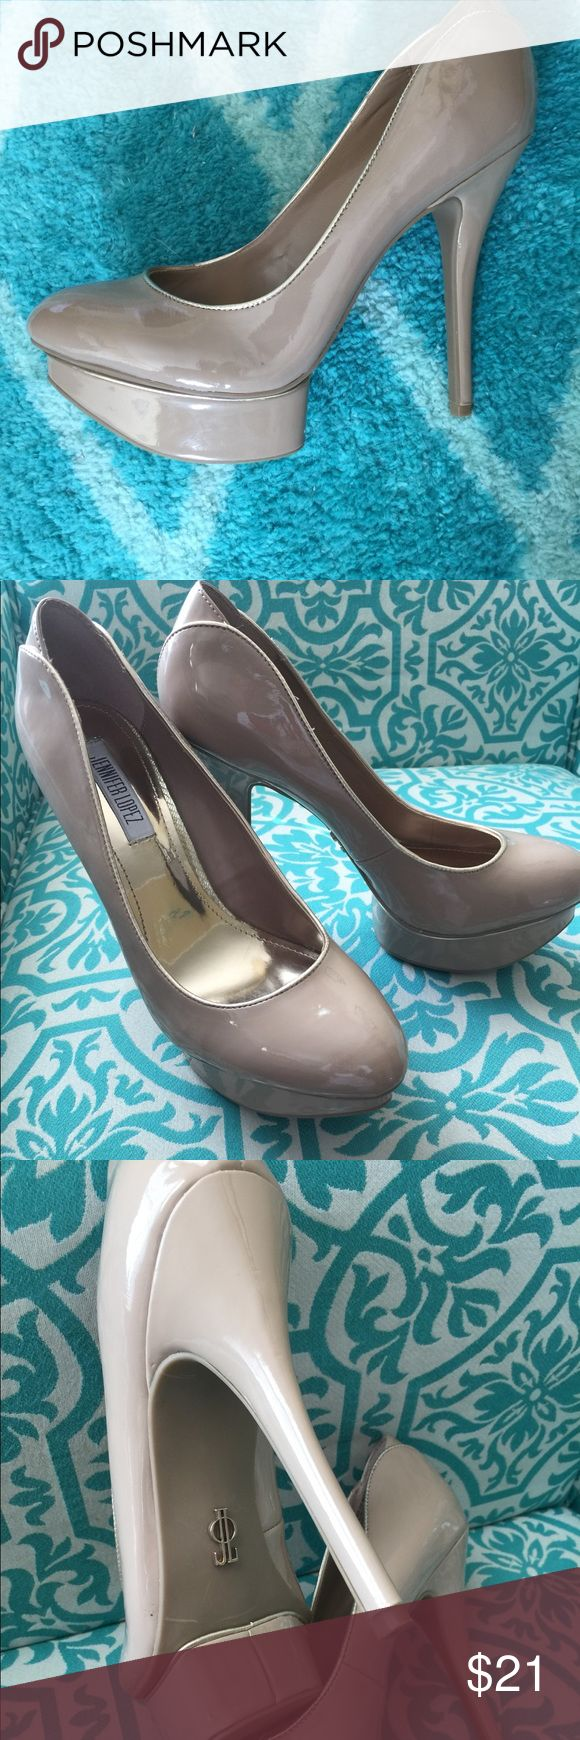 """👠JLo 5"""" Heel Pumps!👠 👠JLo 5"""" Heel Size 10M Taupe Colored Pumps!👠 No Scuffs or scratches. Like new condition! If shoes can be SEXY 🔥 then THESE ARE! Great with dresses or jeans! Whichever suits your style👠👗👖 🚫🚬Smoke Free Home! Open for offers! No Trade. Jennifer Lopez Shoes Heels"""